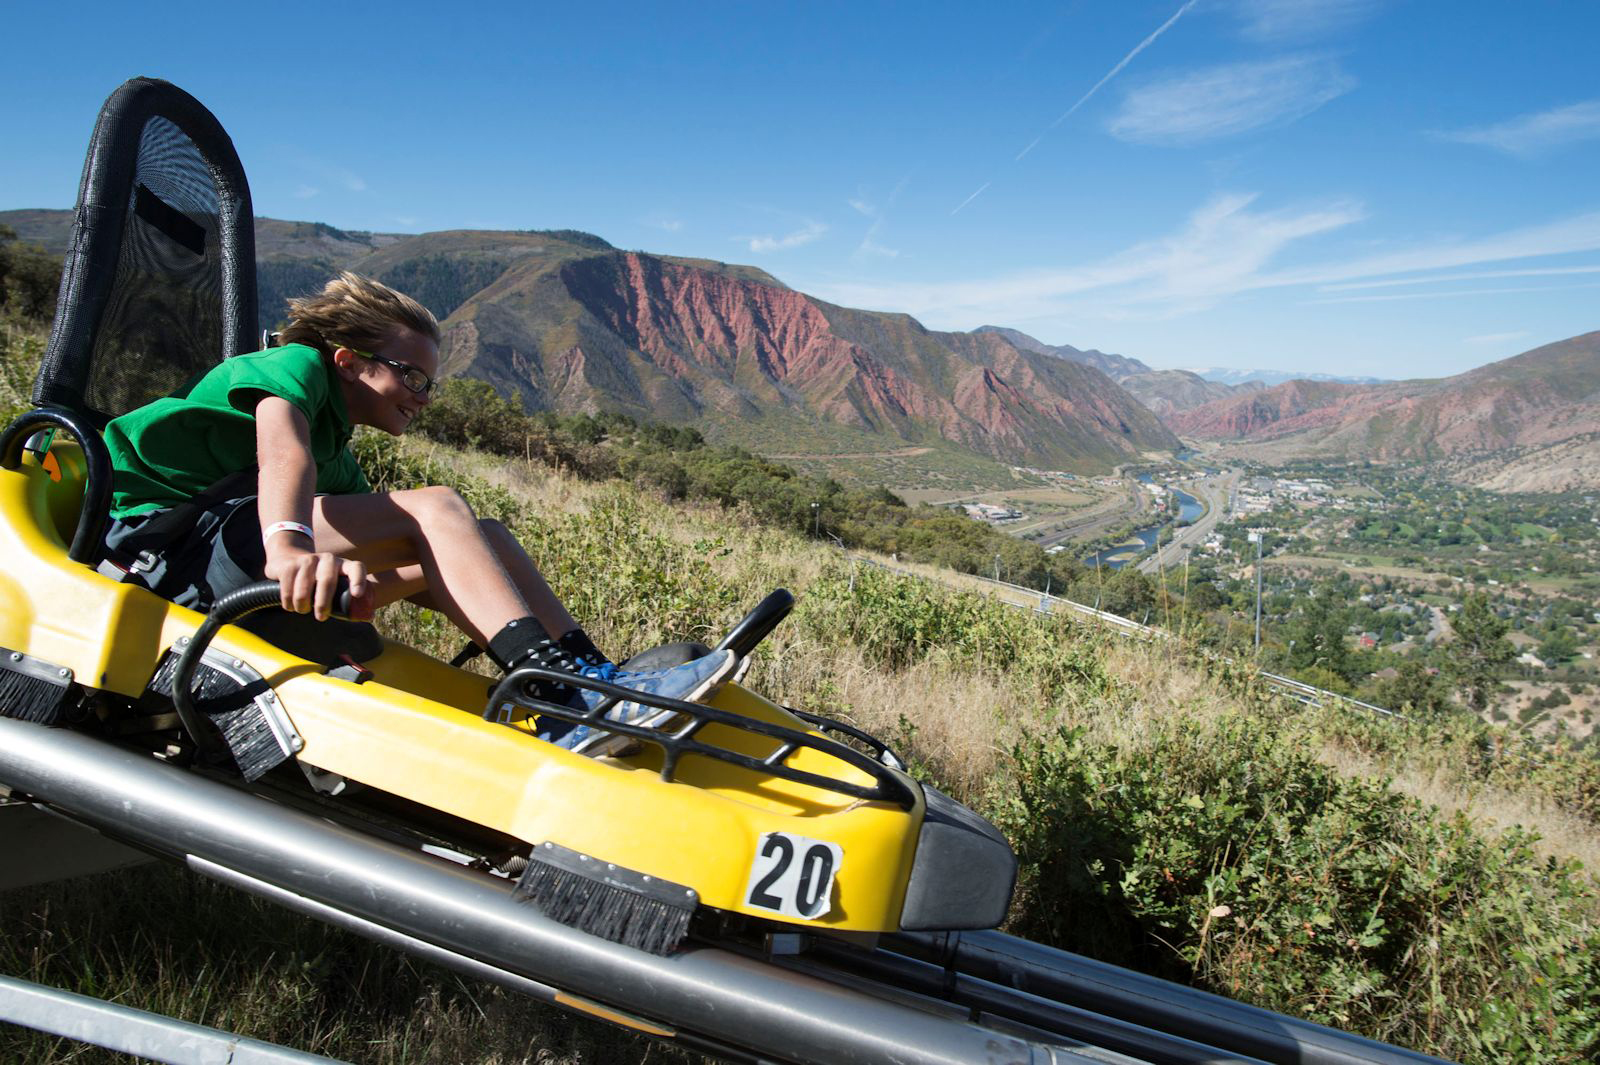 Alpine Coaster at Glenwood Caverns Adventure Park